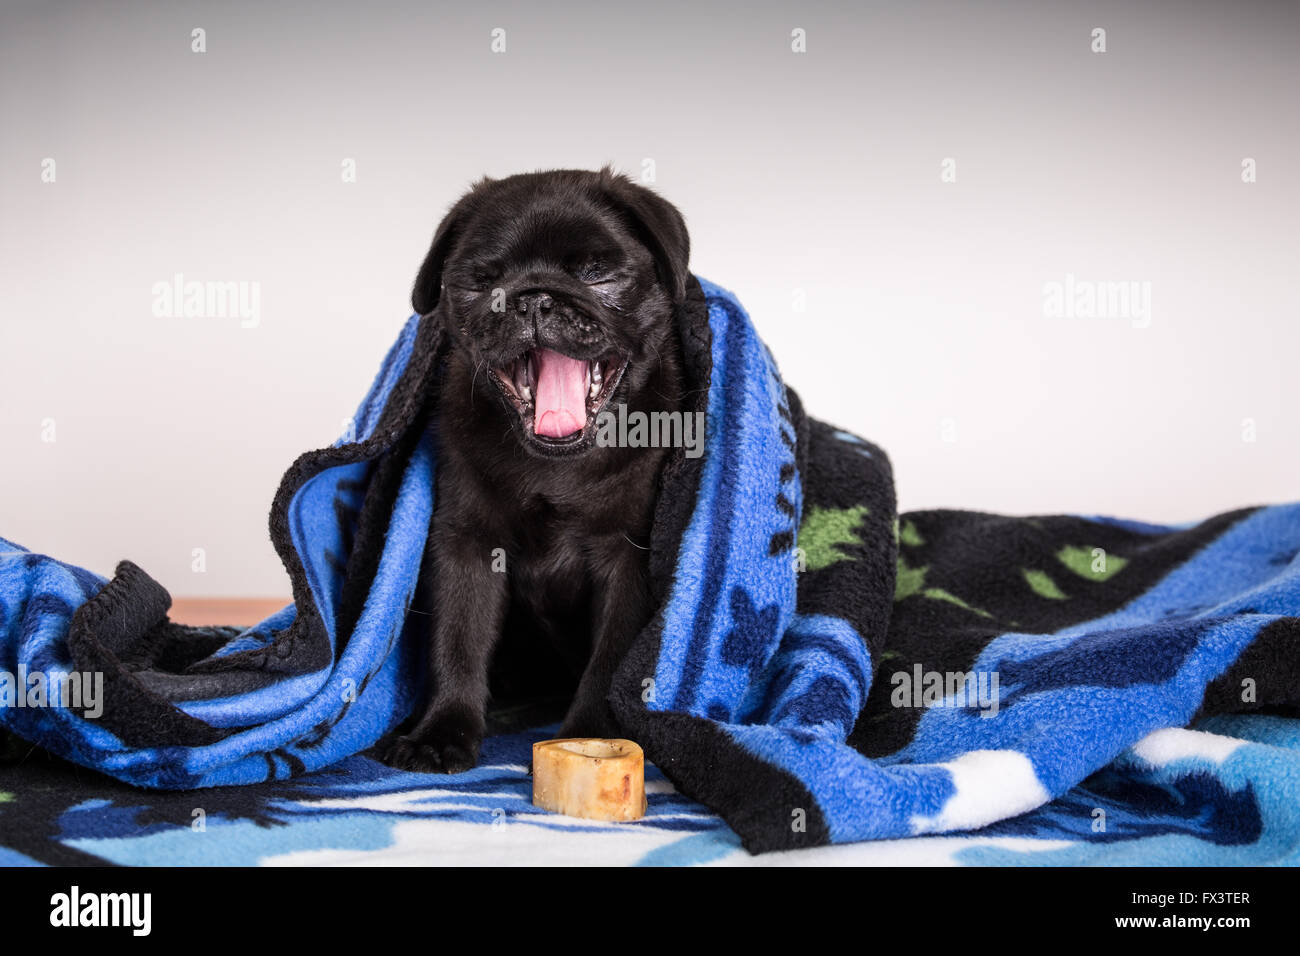 Fitzgerald, a 10 week old black Pug puppy yawning and curled up in a blanket in Issaquah, Washington, USA - Stock Image